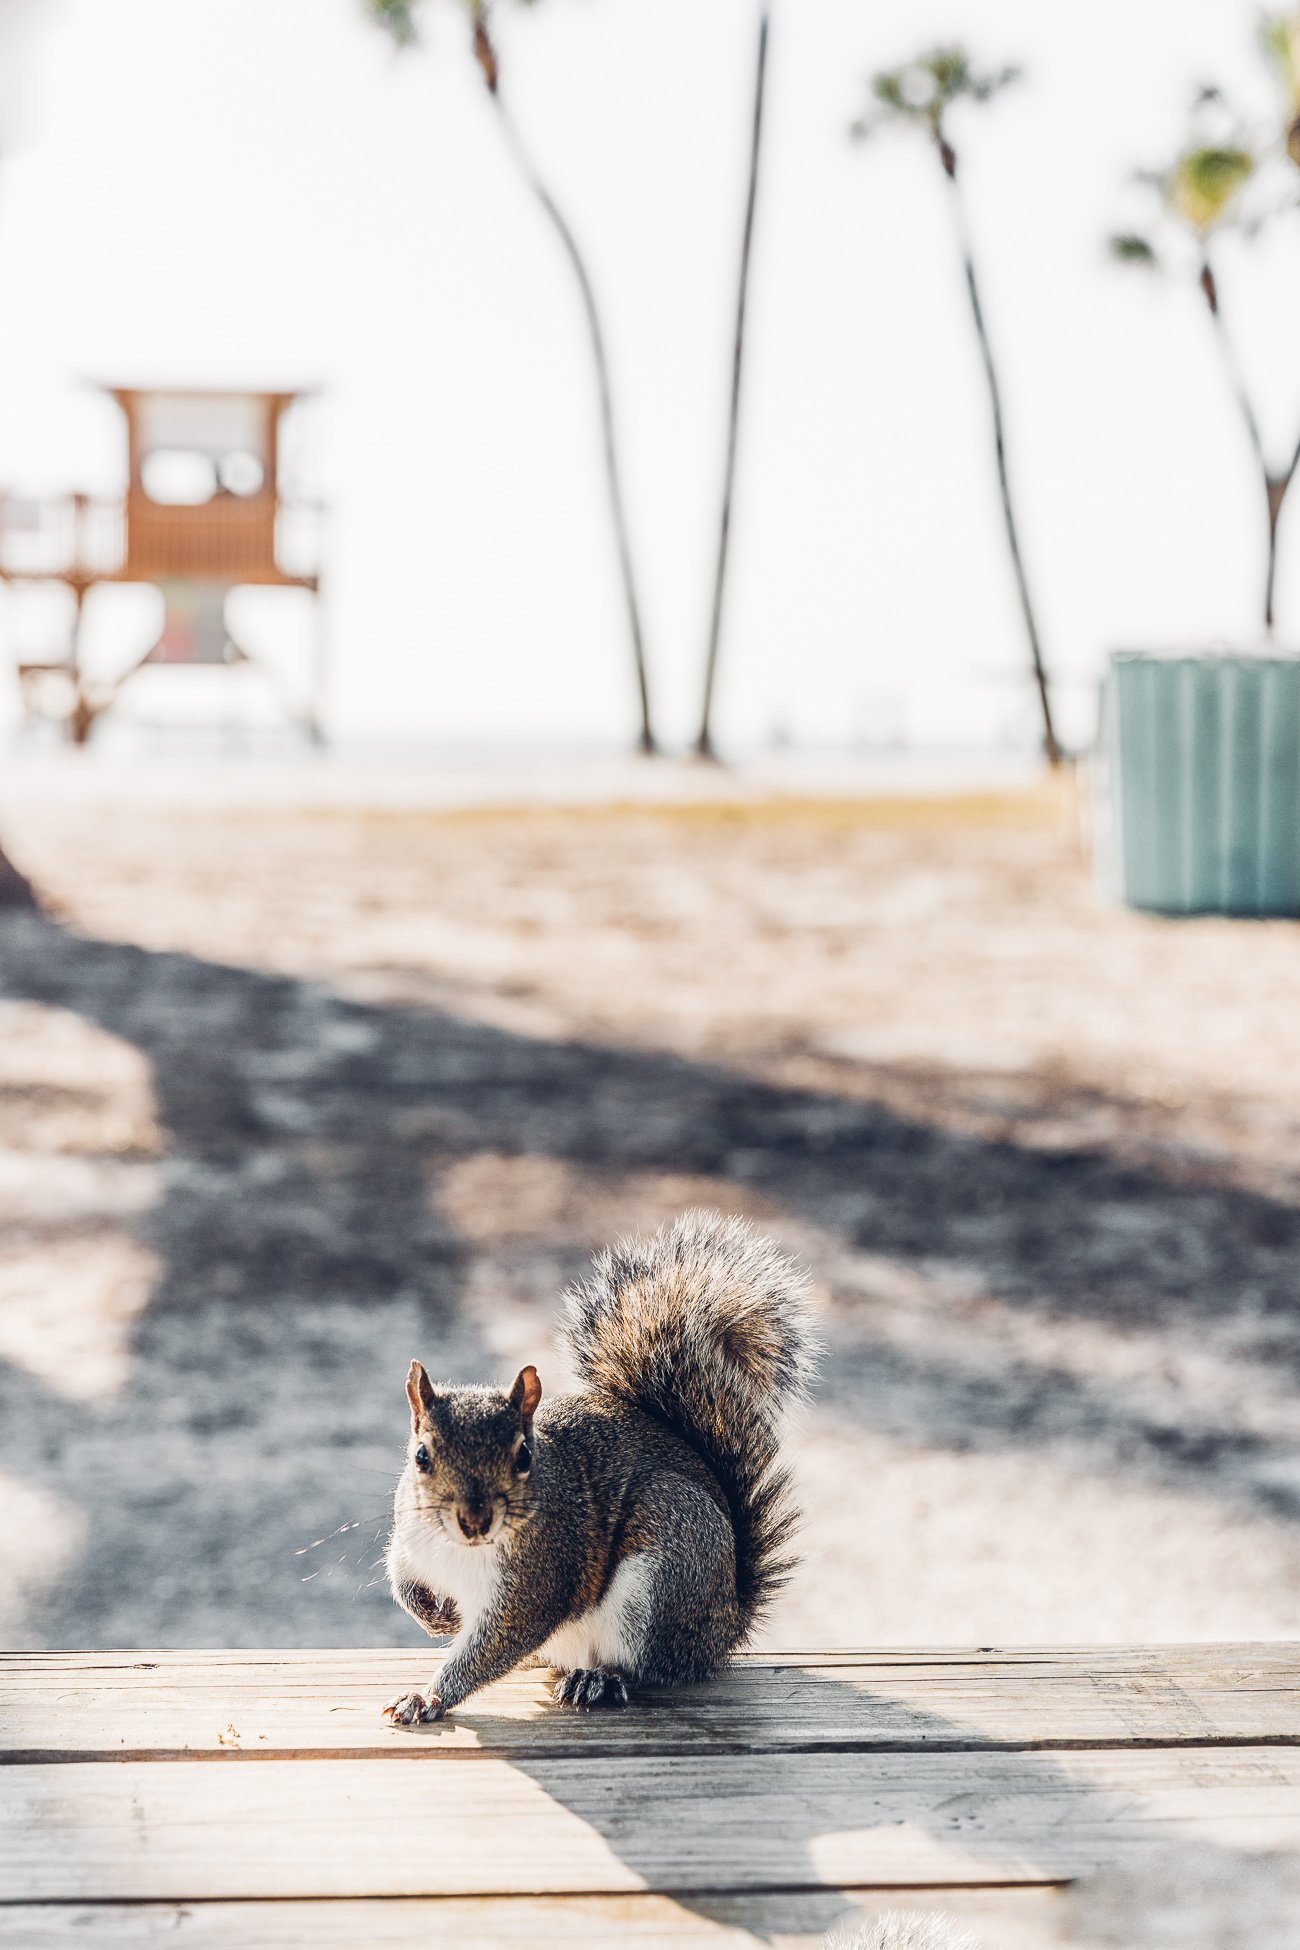 Squirrel at Coquina Beach Florida